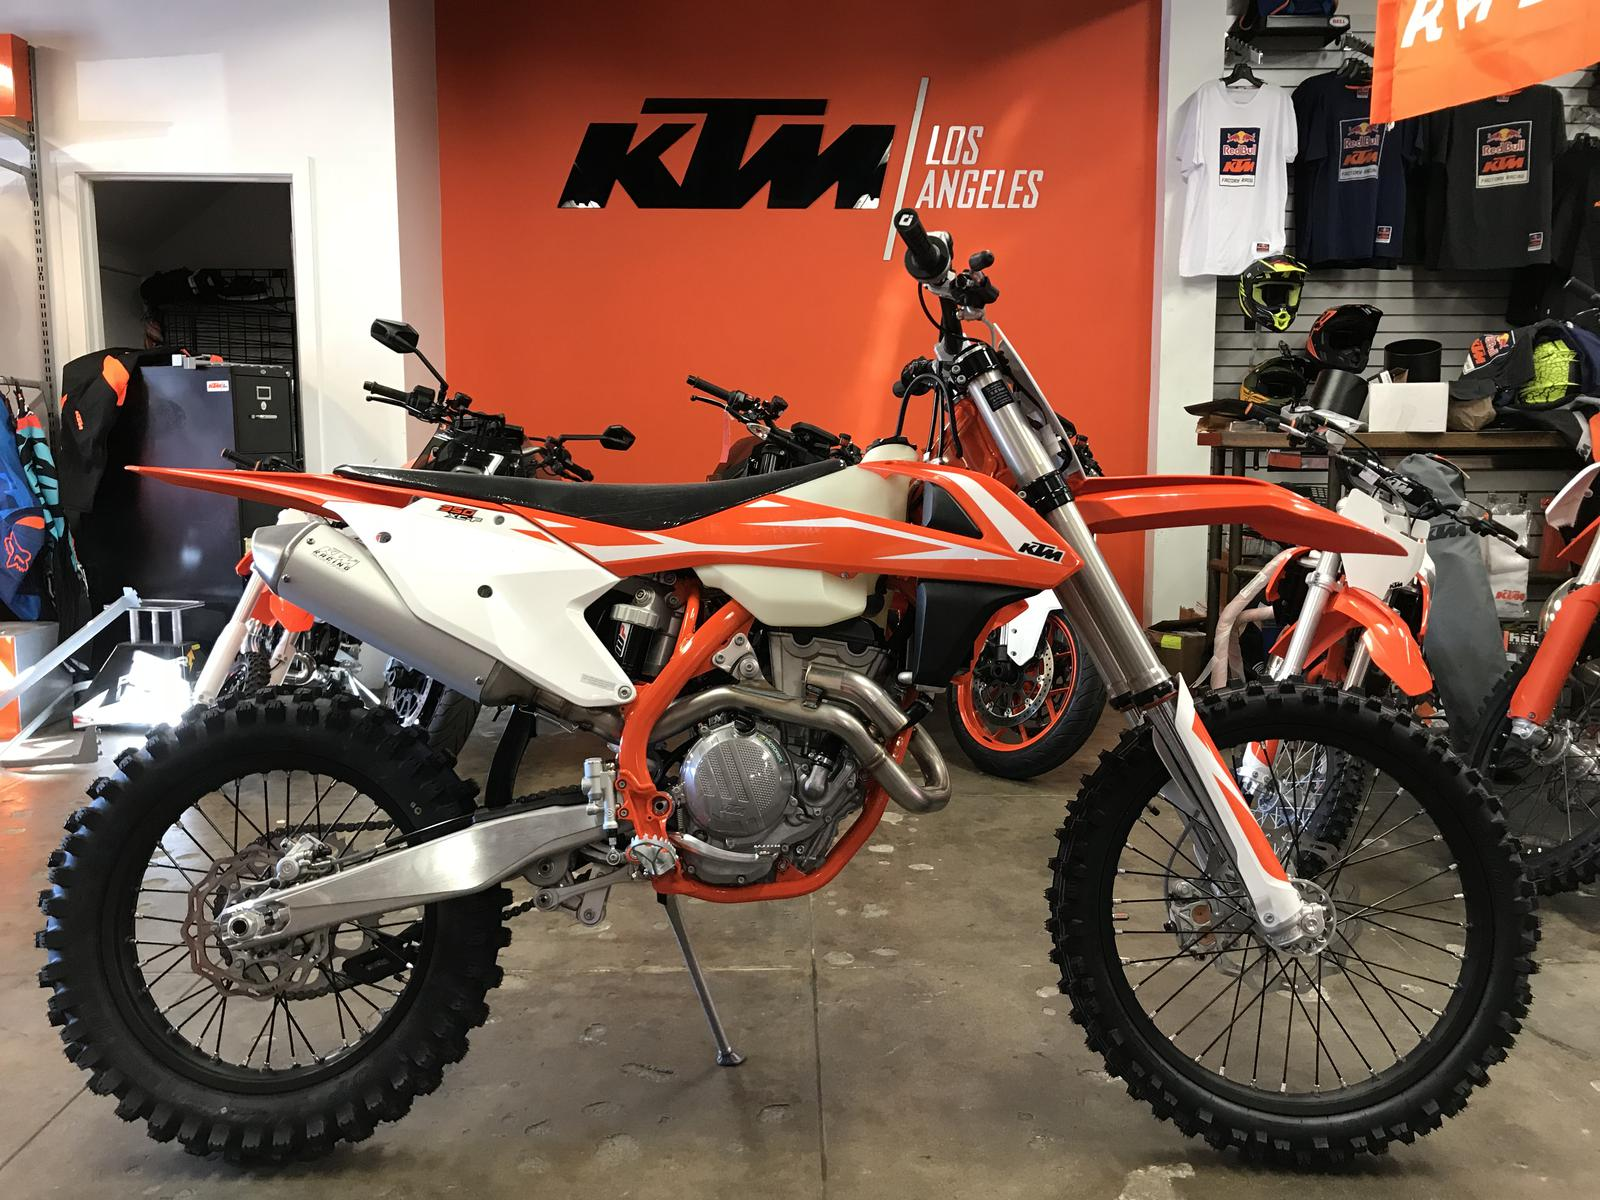 2018 ktm 350 xcf. exellent 2018 2018 ktm 350 xcf for sale in los angeles ca  beverly hills motorcycles  310 3600916 in ktm xcf